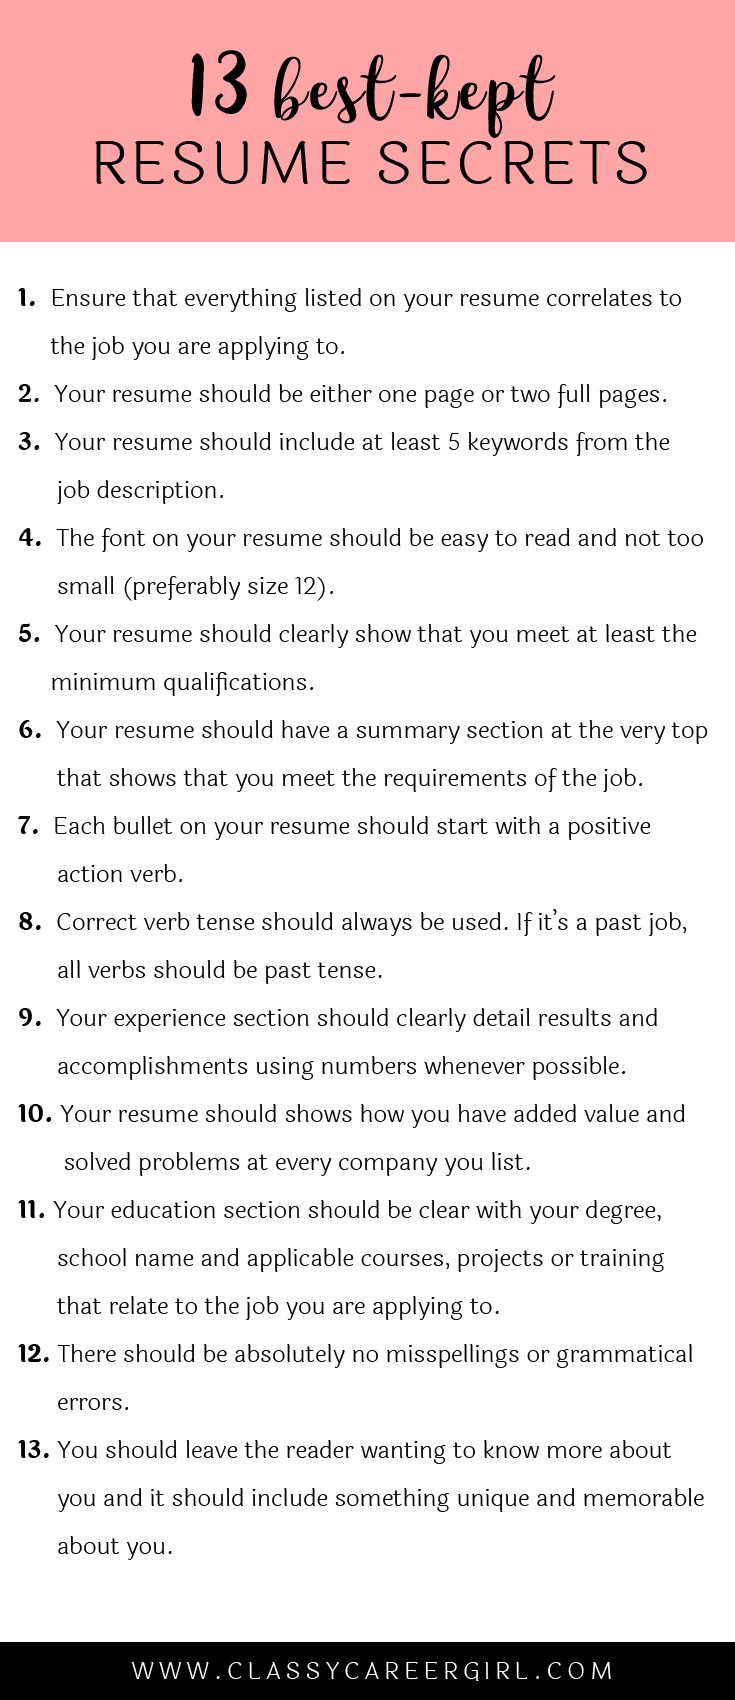 Picnictoimpeachus  Remarkable  Ideas About Resume On Pinterest  Cv Format Resume Cv And  With Magnificent Some Hiring Managers Will Toss Your Resume Out If You Dont Know These  With Astonishing Sample Resume High School Also Hobbies In Resume In Addition Food Service Director Resume And Qualities To Put On Resume As Well As Adjunct Professor Resume Sample Additionally Research Assistant Resume Sample From Pinterestcom With Picnictoimpeachus  Magnificent  Ideas About Resume On Pinterest  Cv Format Resume Cv And  With Astonishing Some Hiring Managers Will Toss Your Resume Out If You Dont Know These  And Remarkable Sample Resume High School Also Hobbies In Resume In Addition Food Service Director Resume From Pinterestcom